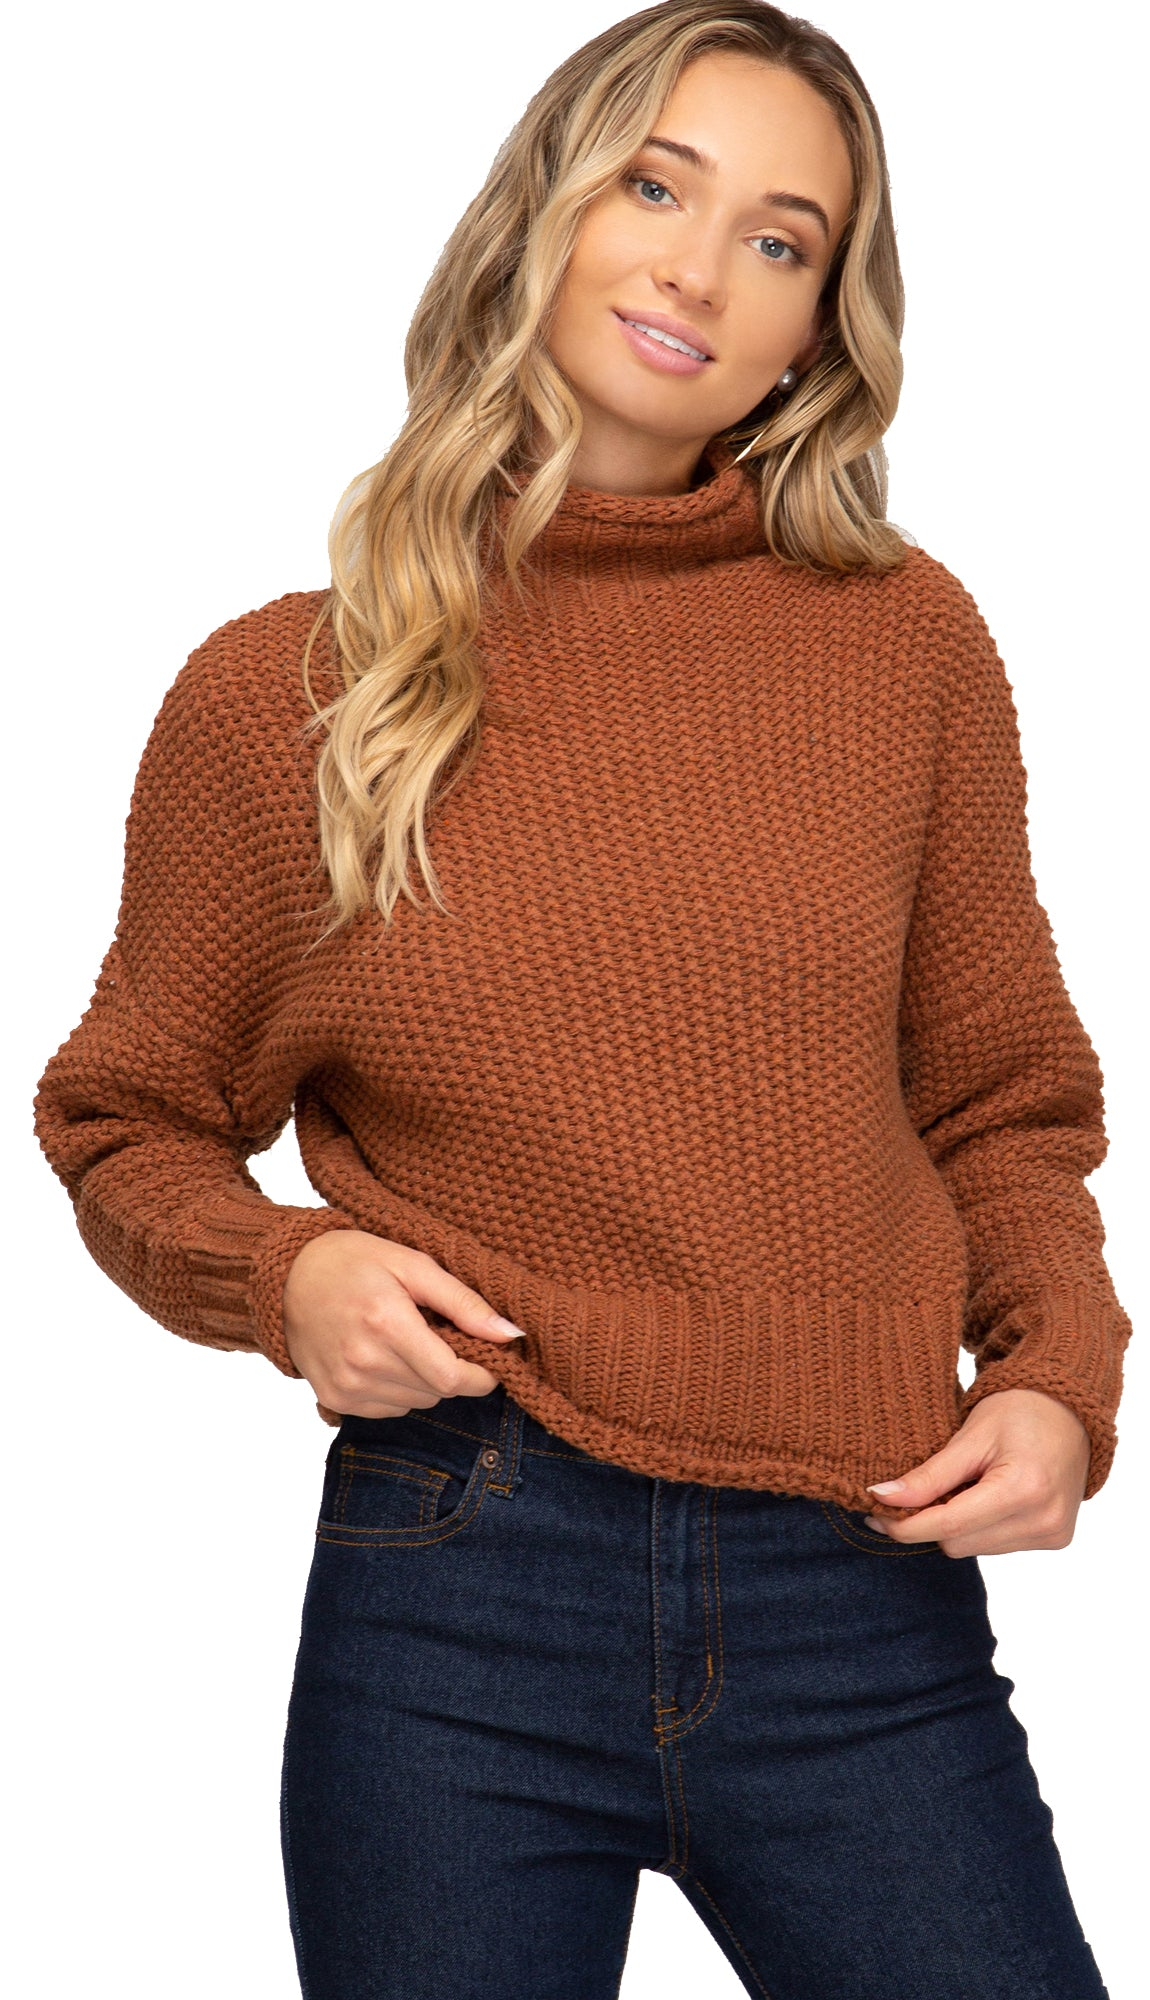 Picture This Turtle Neck Sweater- Black